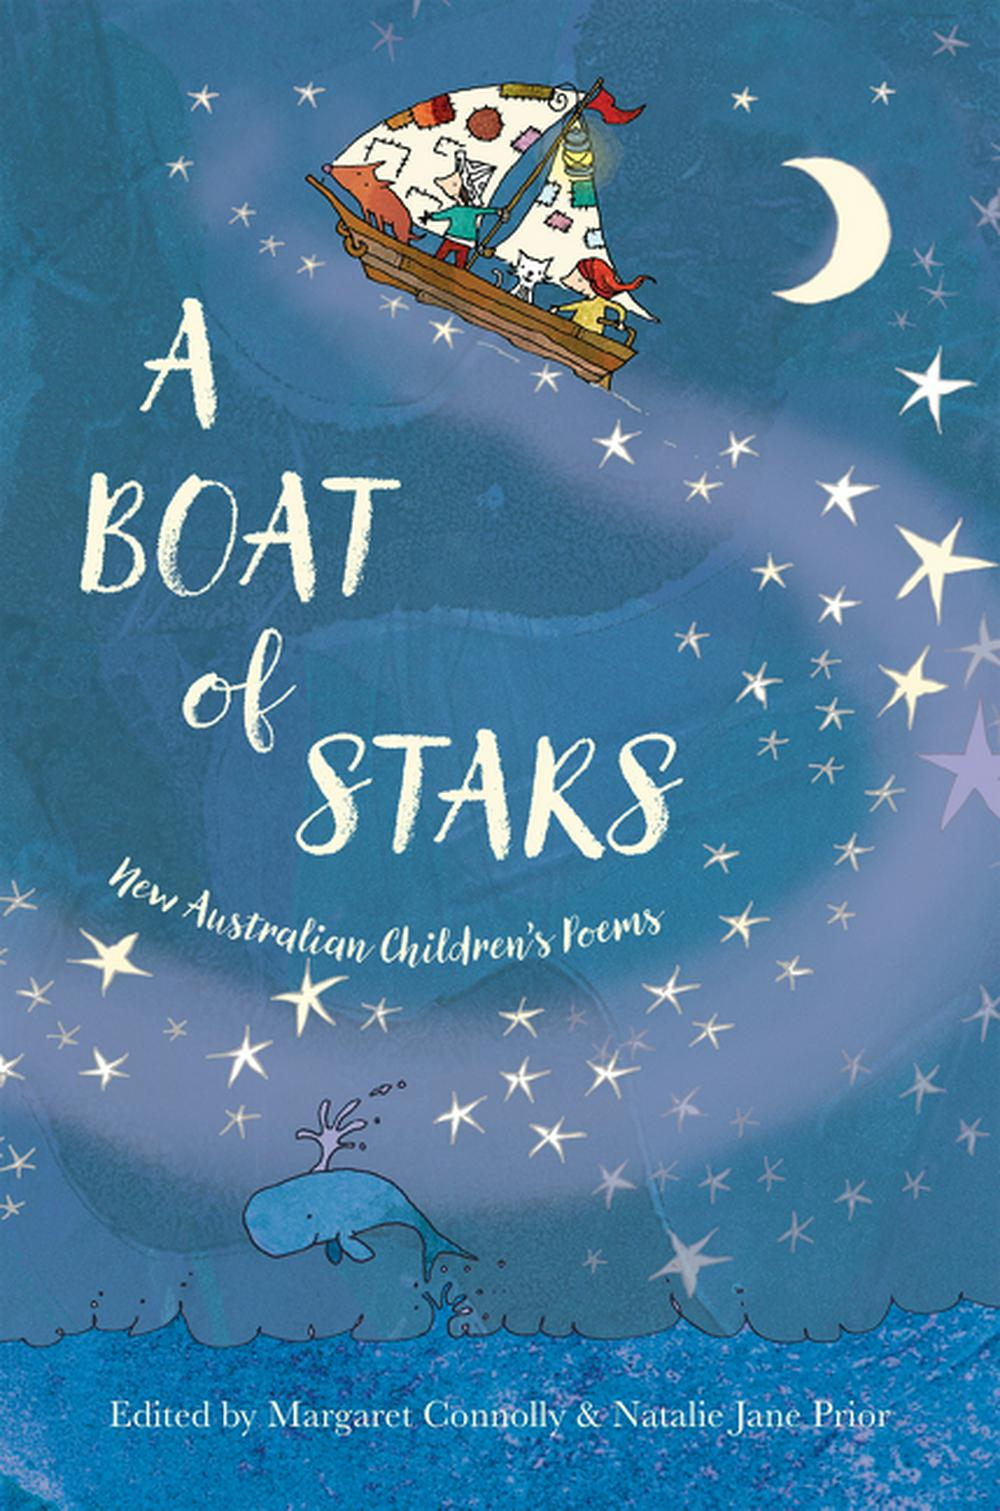 A Boat of StarsNew Australian Children's Poems